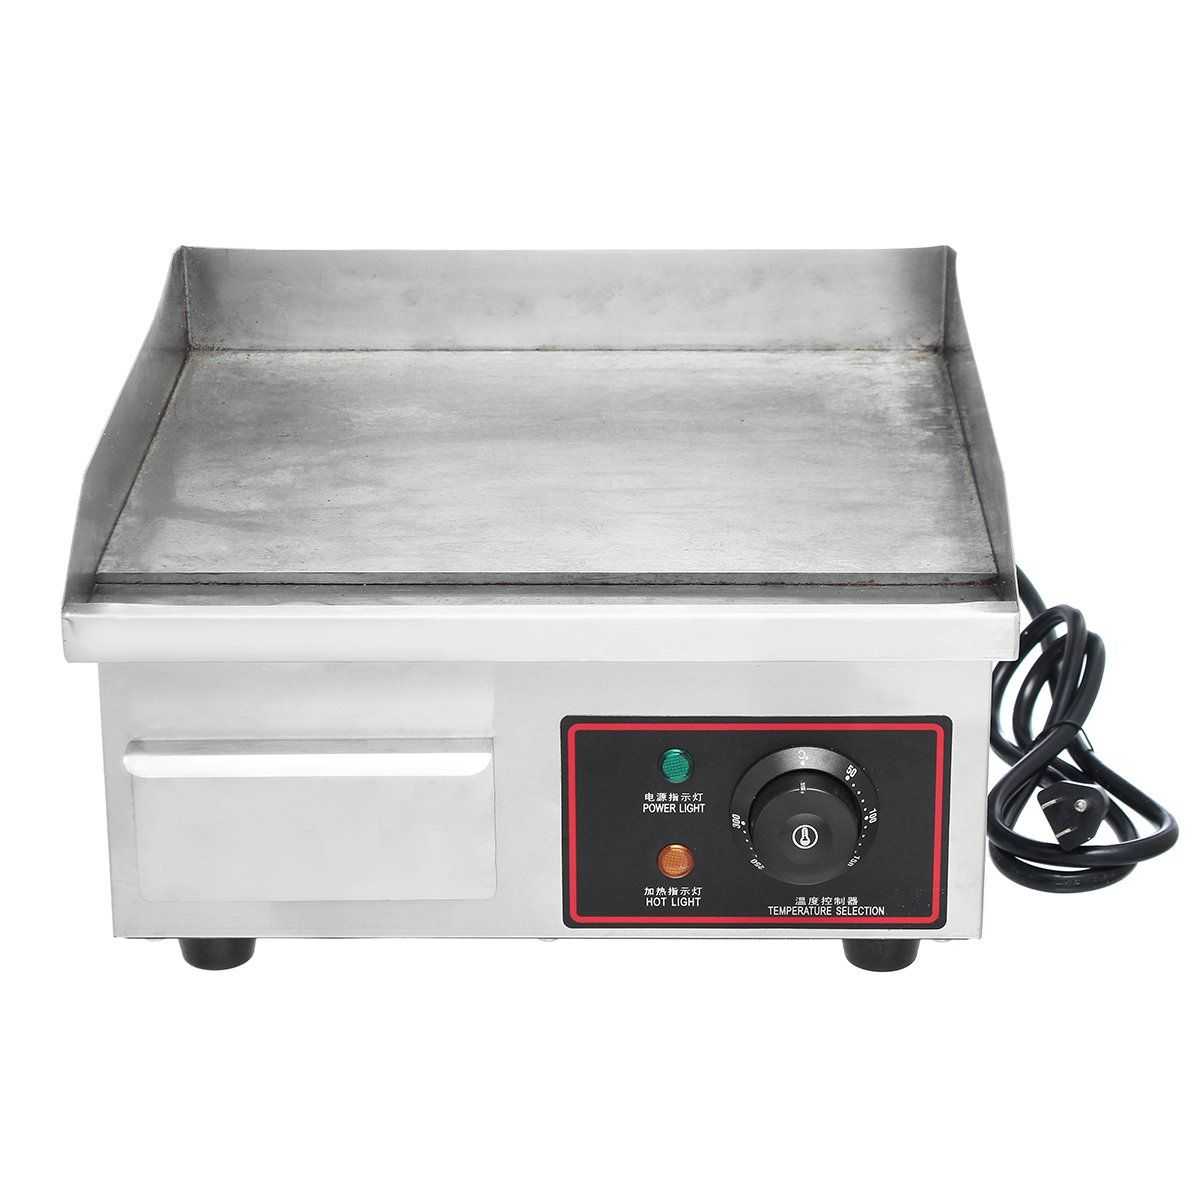 1500w 110v Electric Countertop Griddle Commercial Restaurant Flat